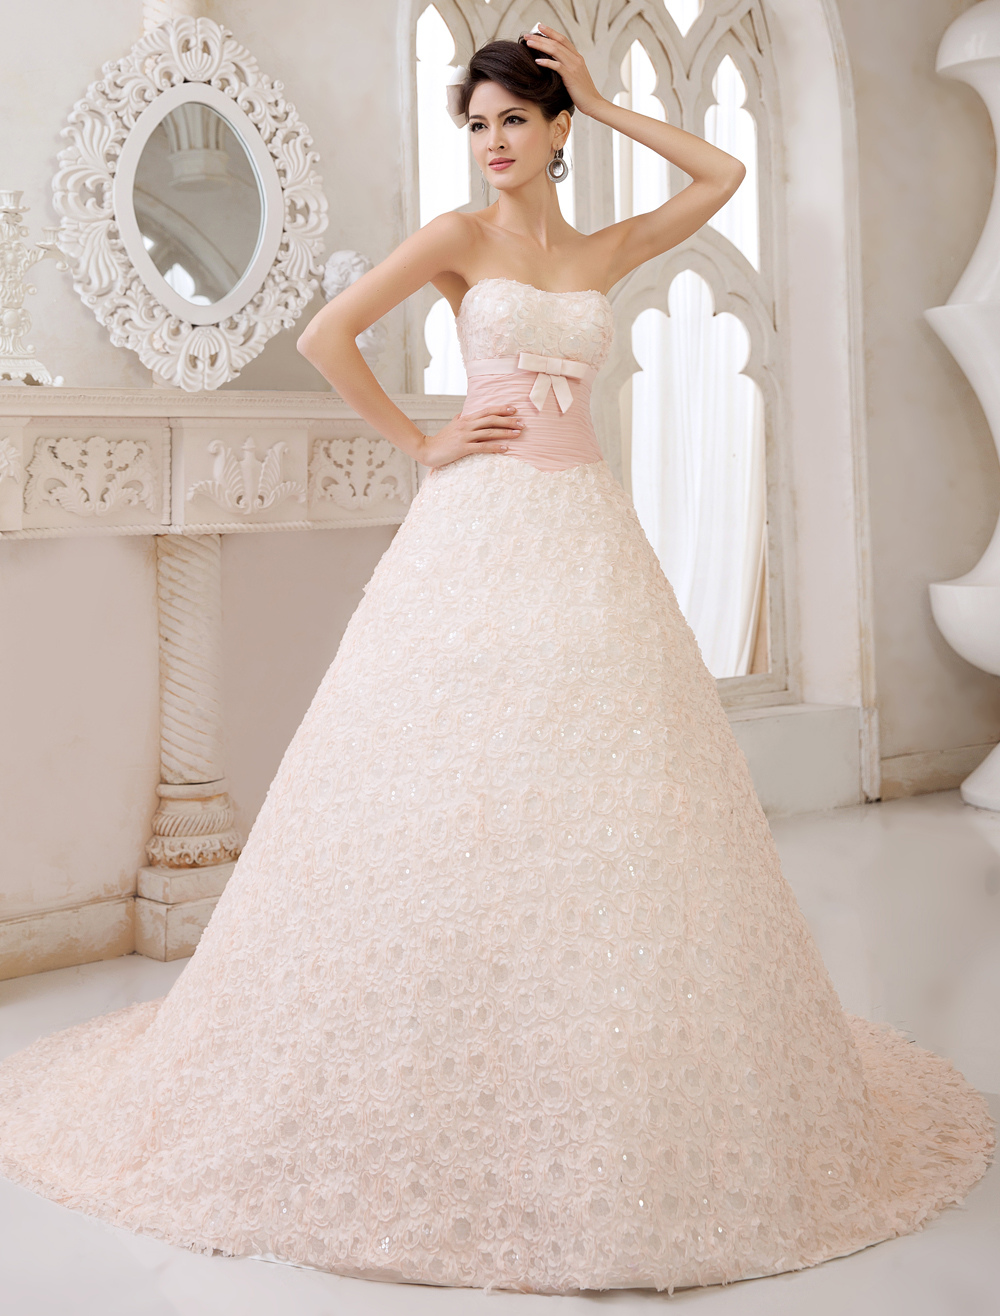 Pink Tulle Sweet Heart Floral Bow A-line Wedding Dress Milanoo